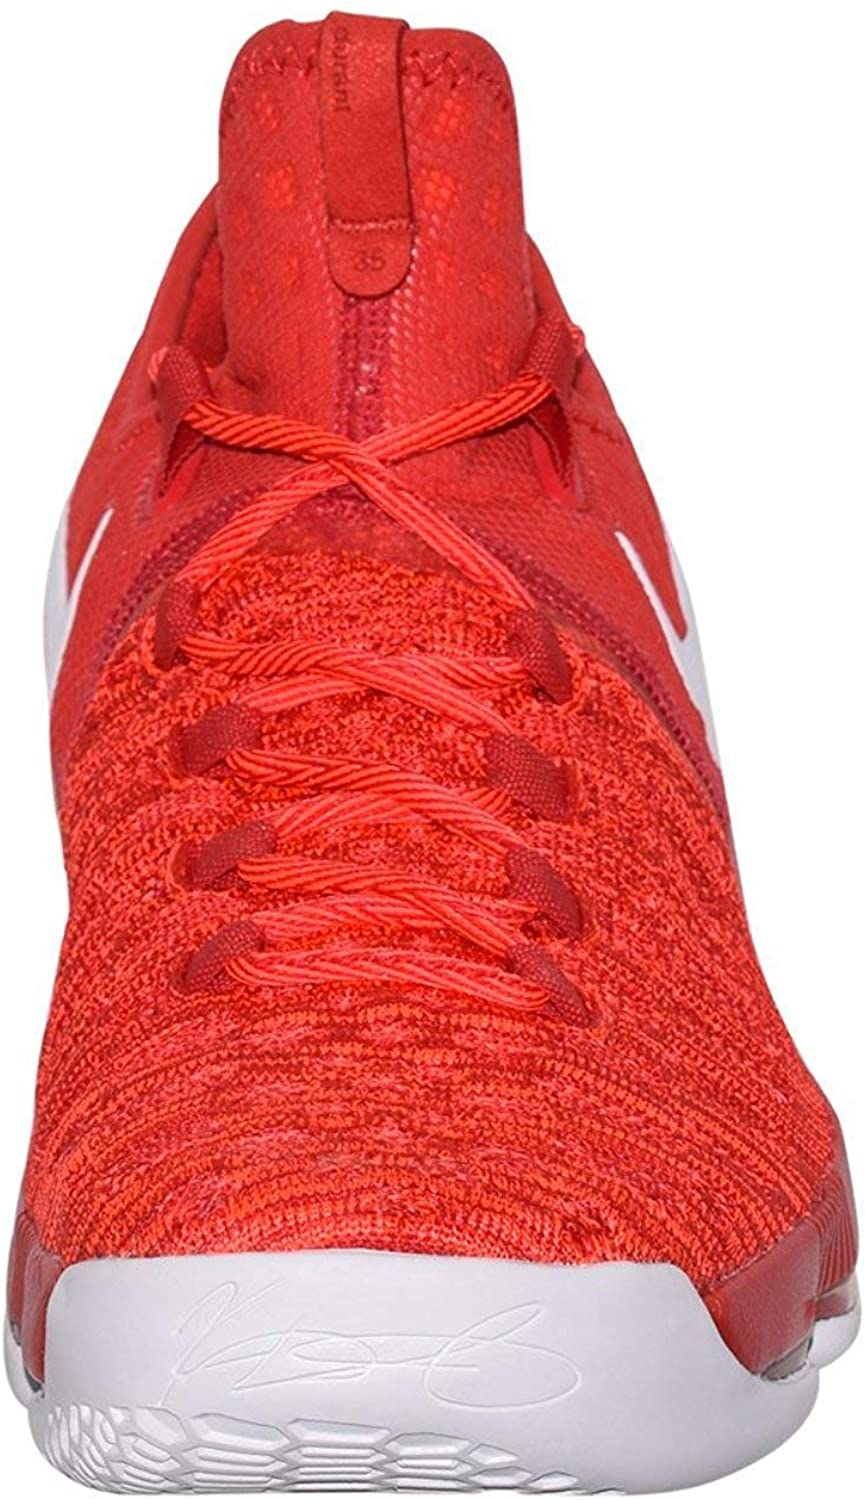 Nike Zoom KD 9, Chaussures de Sport - Basketball Homme University Red White